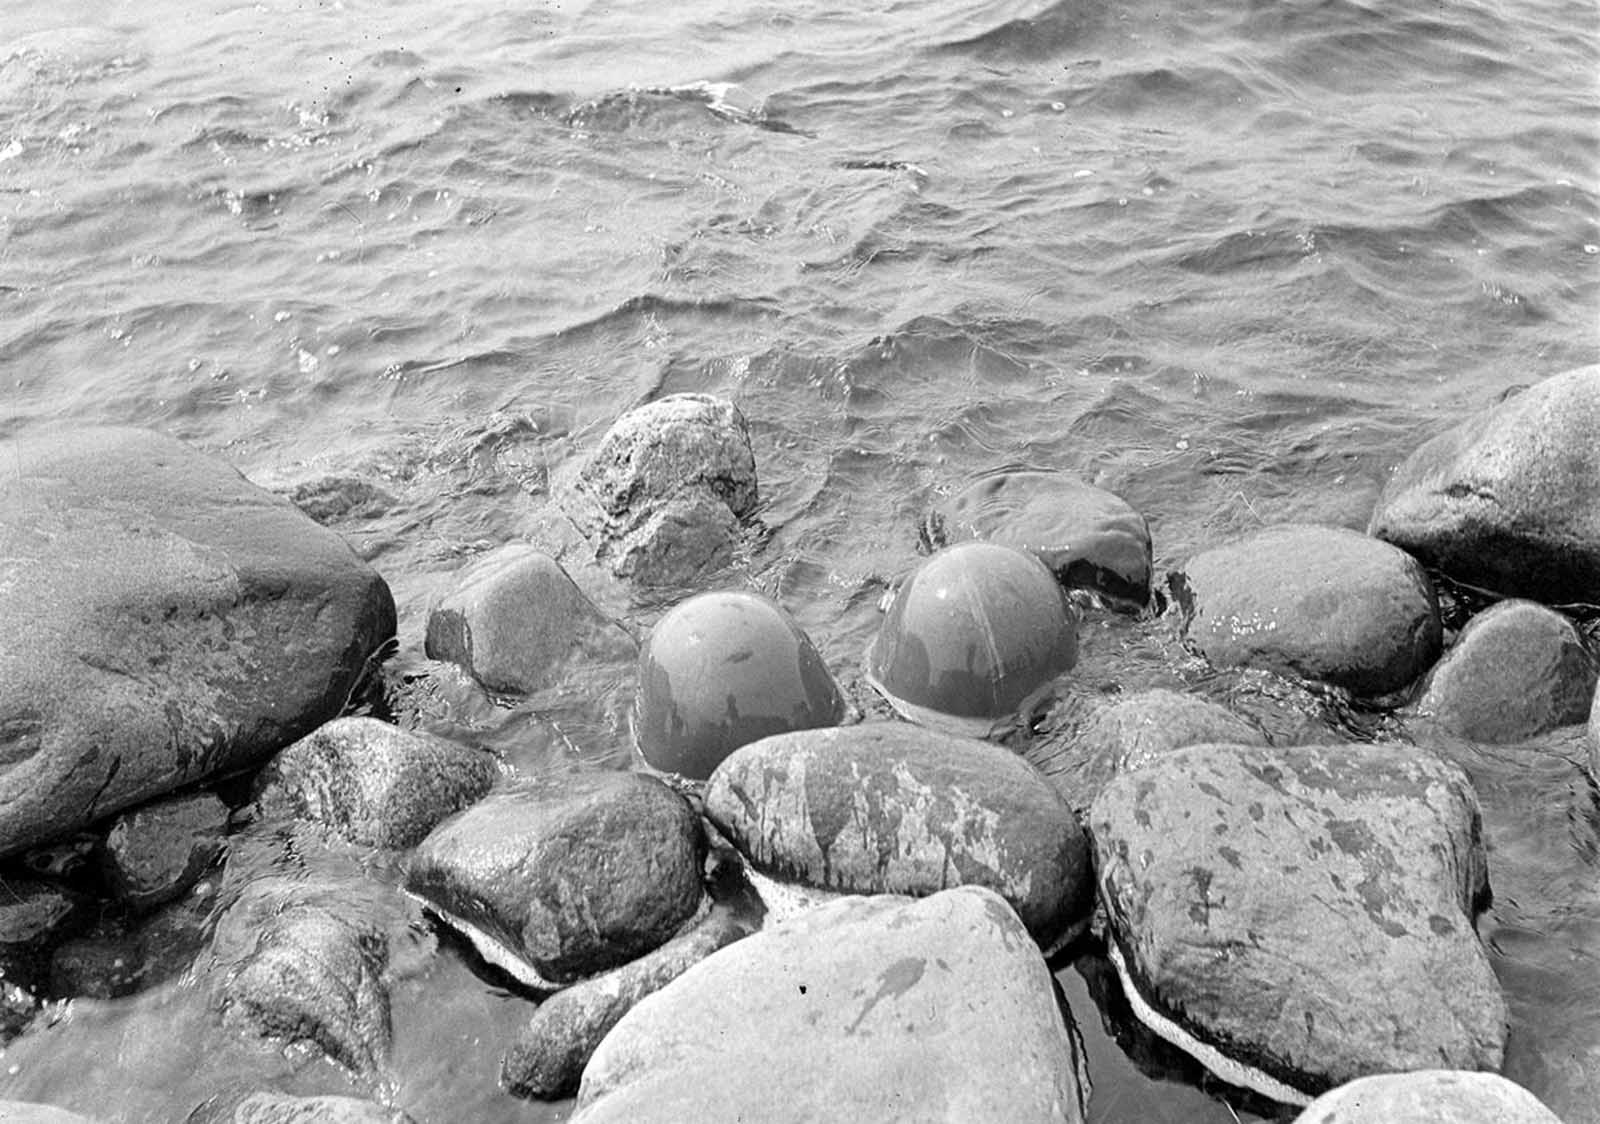 Lunkula island, Jumitsa bay on the south side of village of Varpahainen. Helmets of dead Russians, on July 28, 1941.